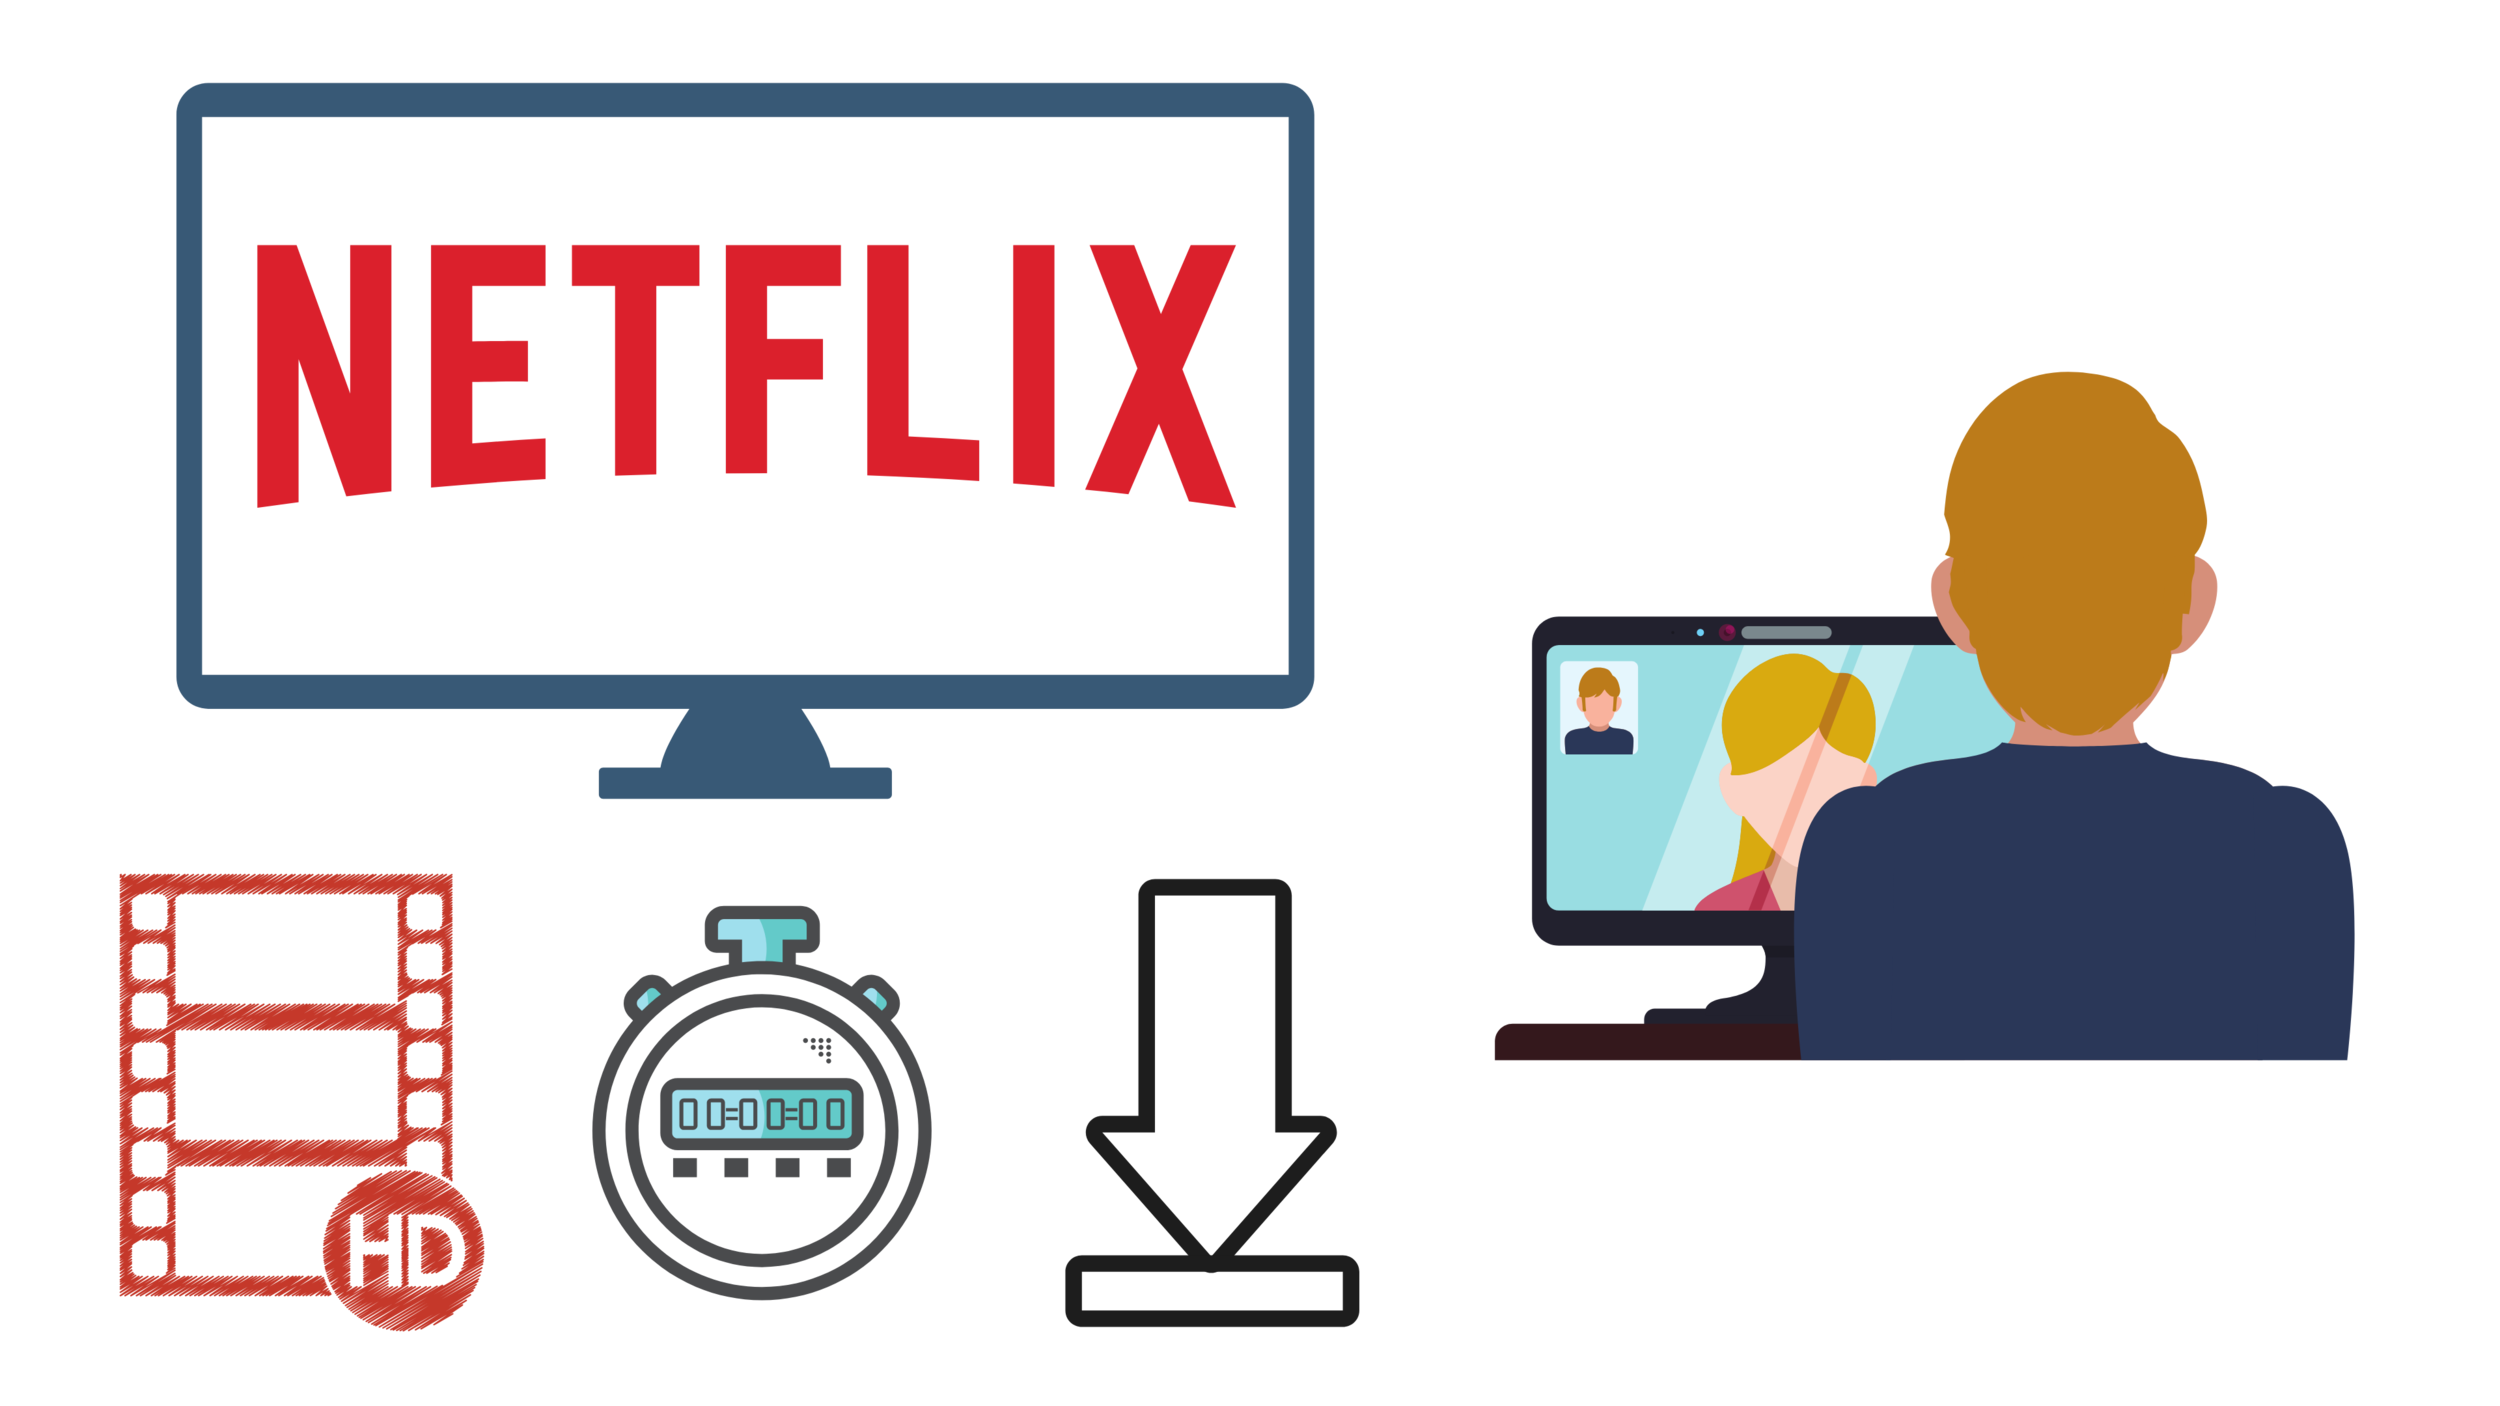 Stream - No buffering, ever. Stream anything you want, whenever you want, in the highest quality possible, no matter how many devices you have. Download an HD movie in seconds, not hours.